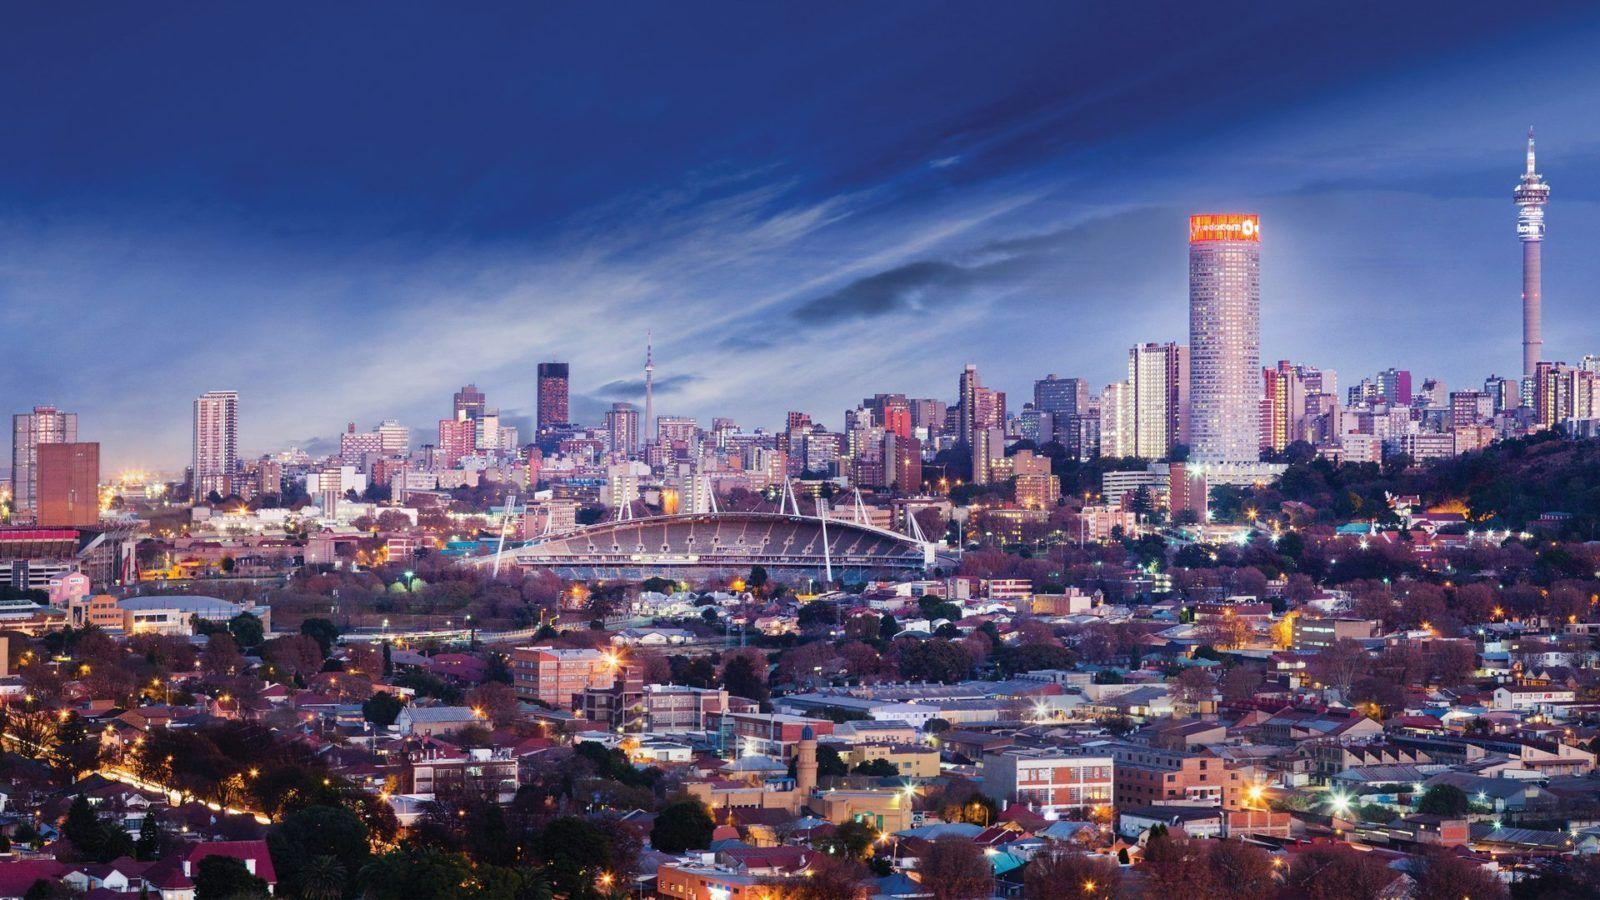 Johannesburg City - South Africa HD Wallpapers and Photos ...